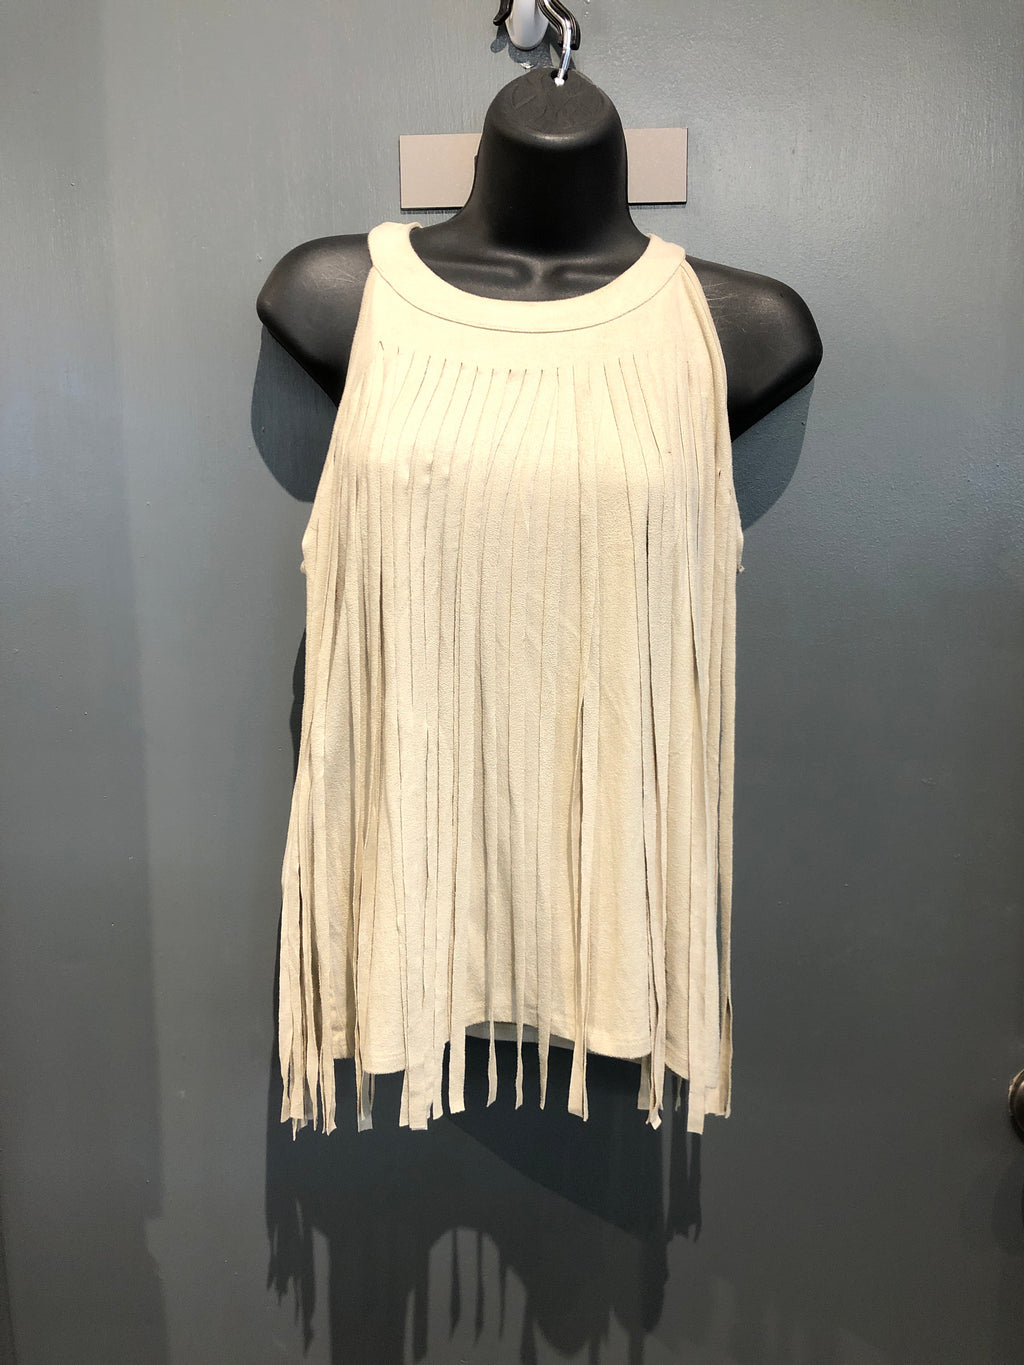 Beige fringe sleeveless top size s/m